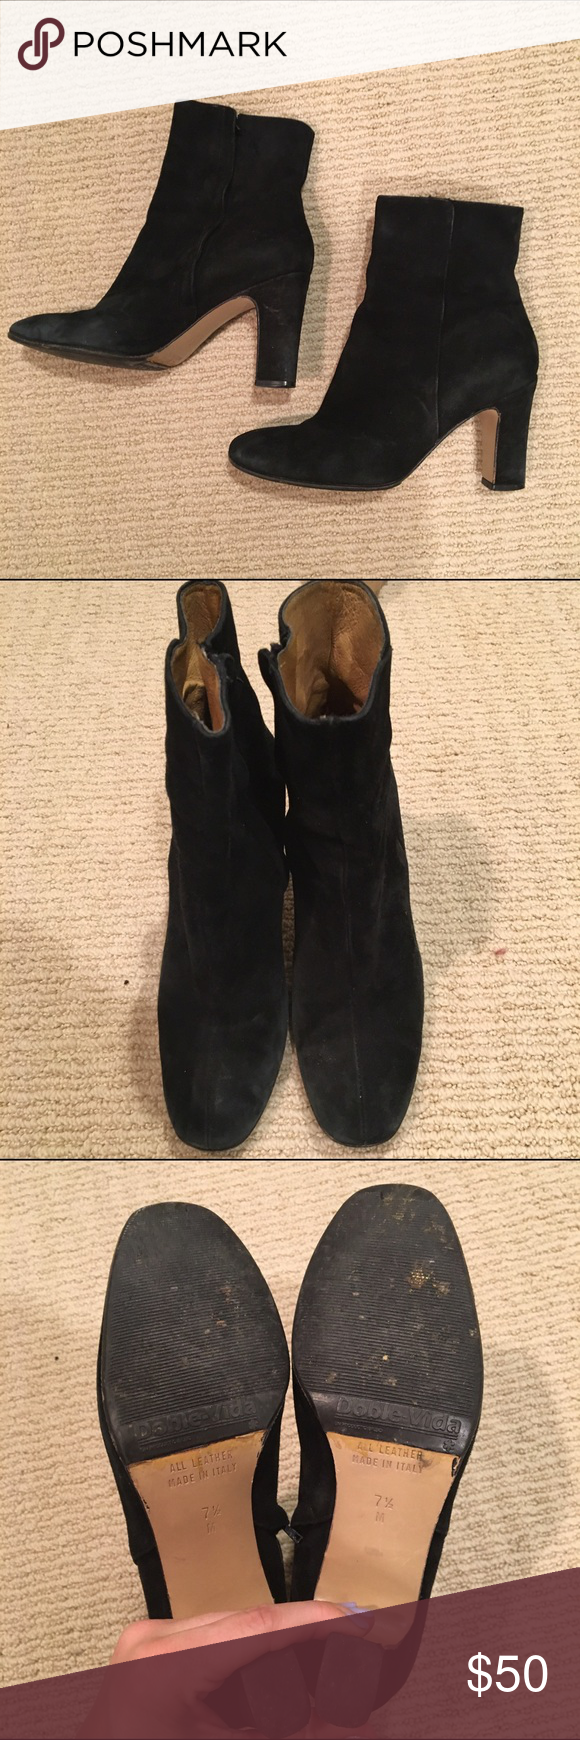 Vintage black suede ankle boots Souls had to be replaced J. Crew Shoes Ankle Boots & Booties